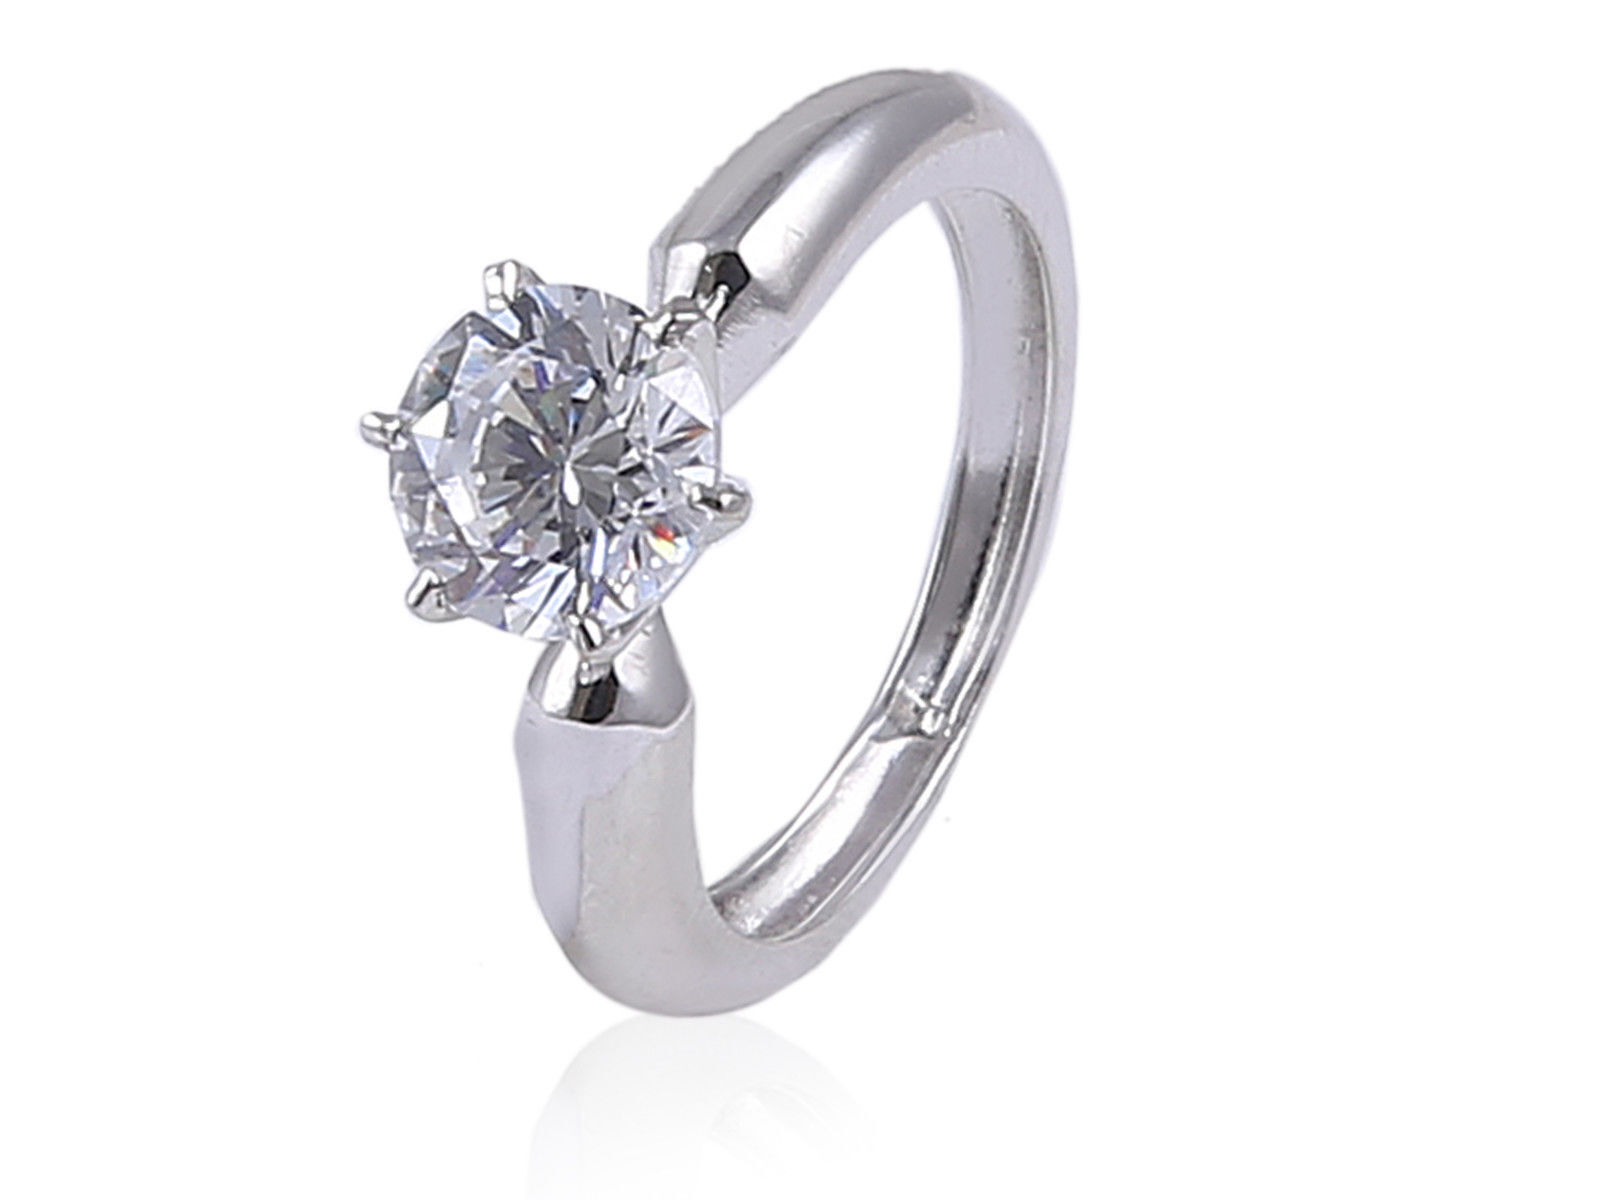 0.50 Cts GIA Certified Round Brilliant Cut Natural Diamond Ring In Fine 18K Gold